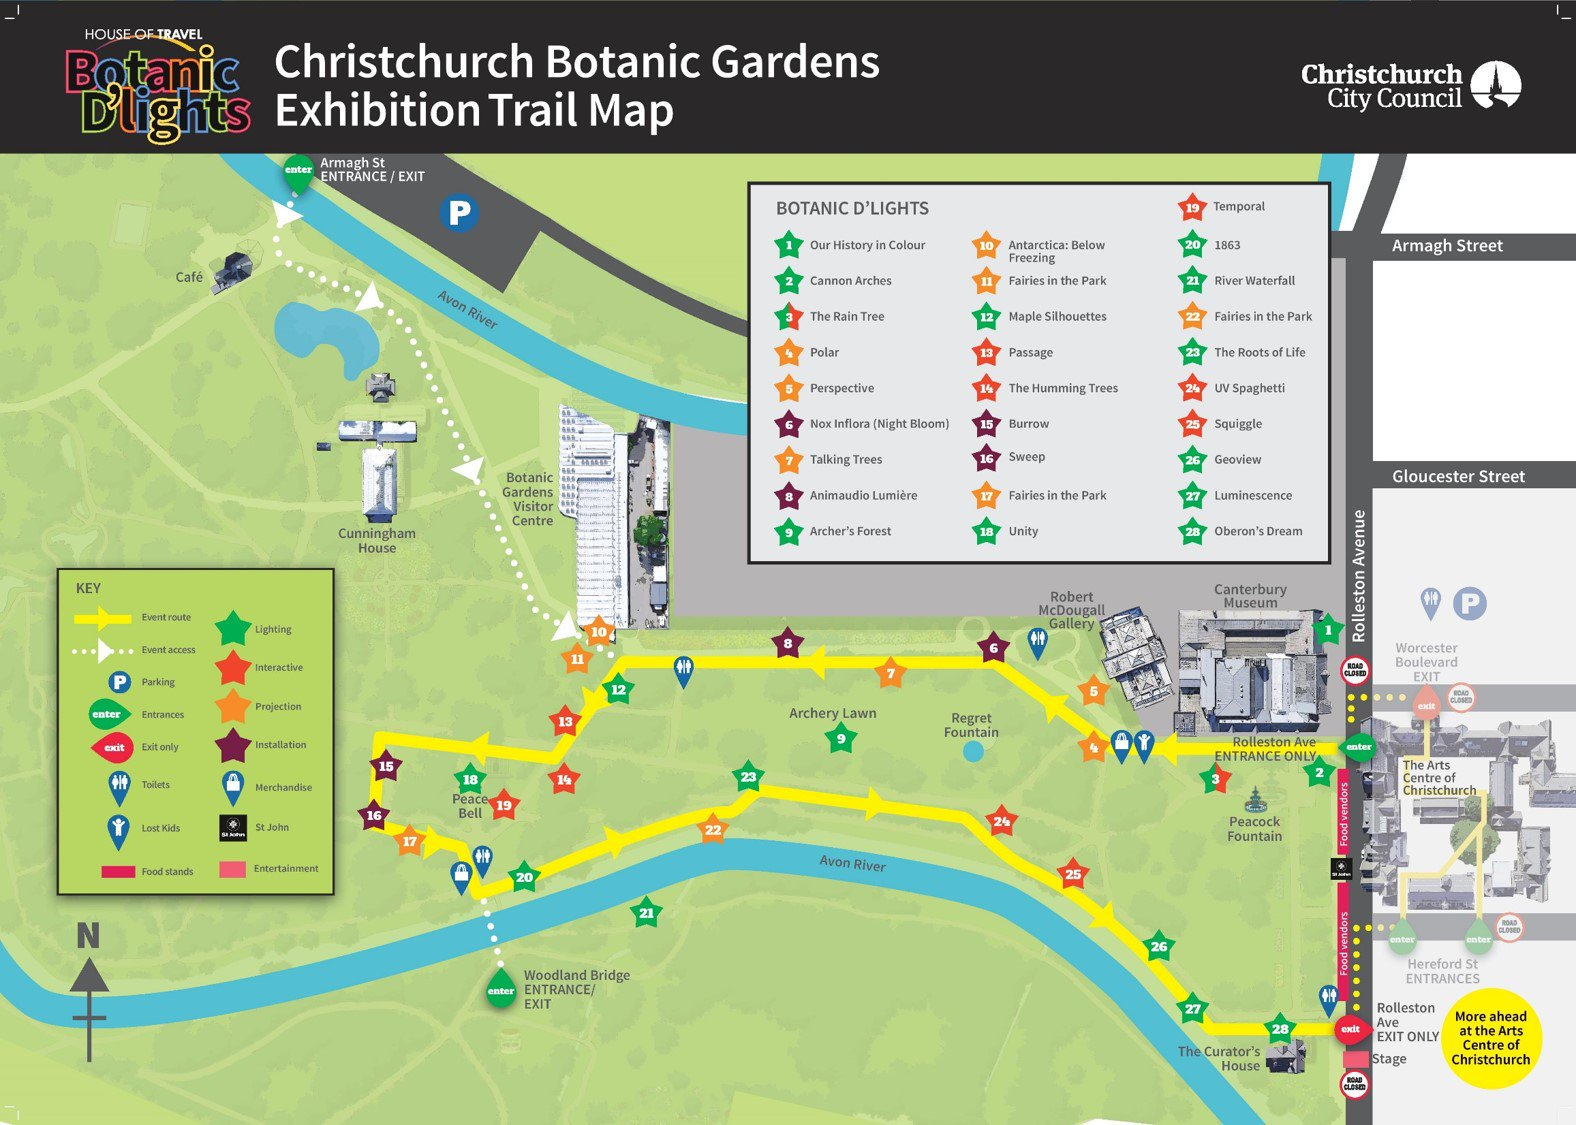 House of Travel Botanic D'Lights 2018 Gardens Trail Map